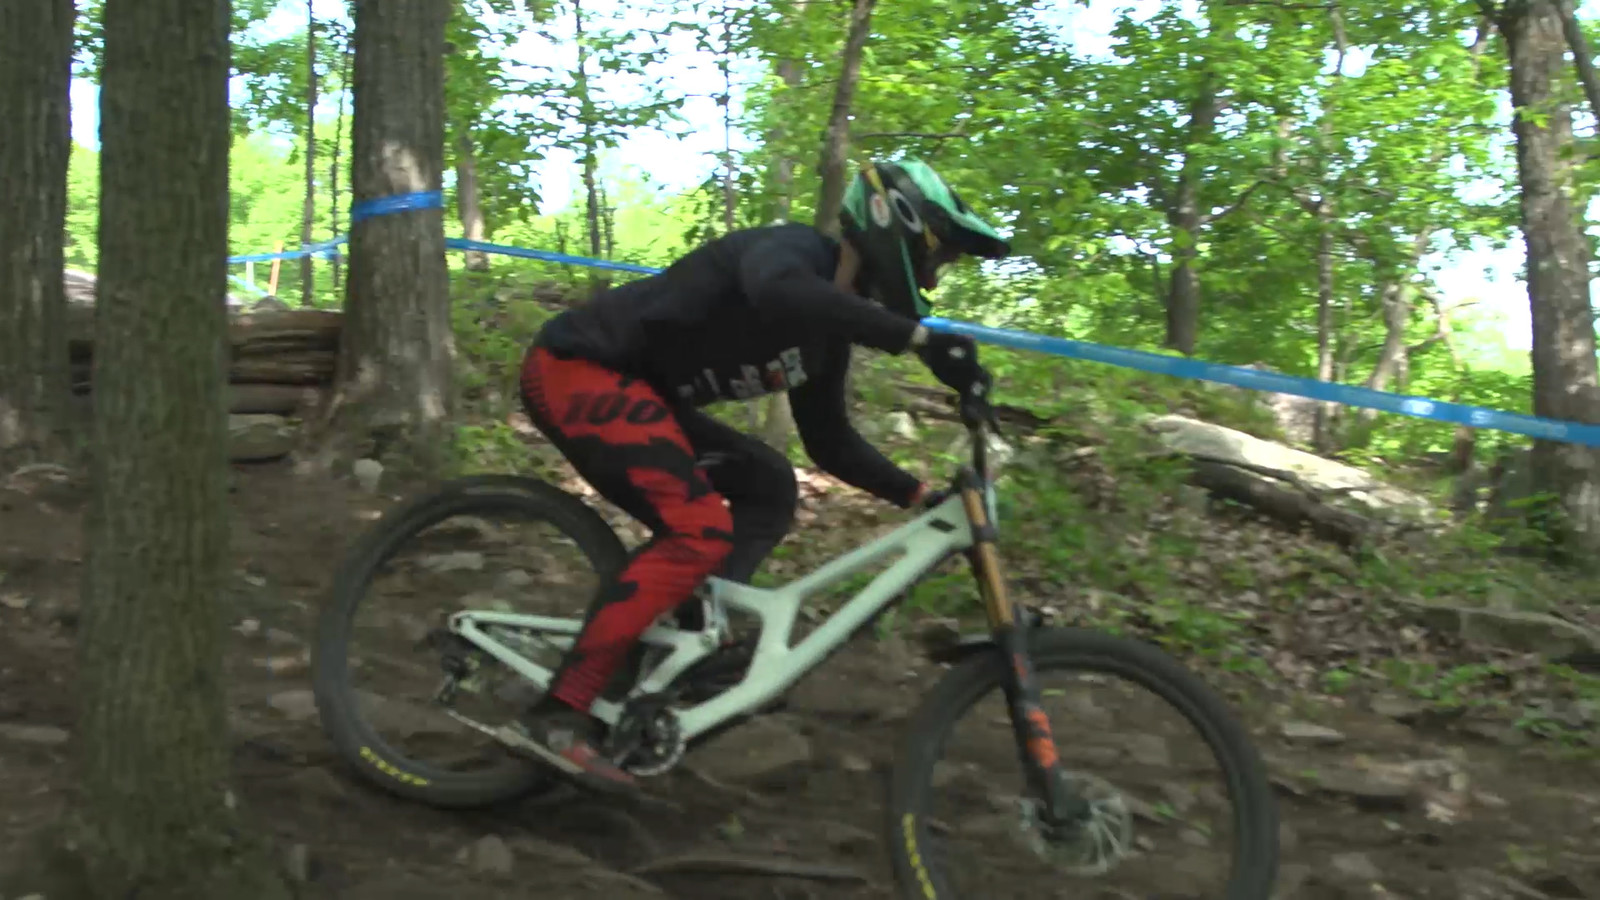 Kiran MacKinnon, 2nd place, on what is believed to be a new version of the Santa Cruz V10 29er.